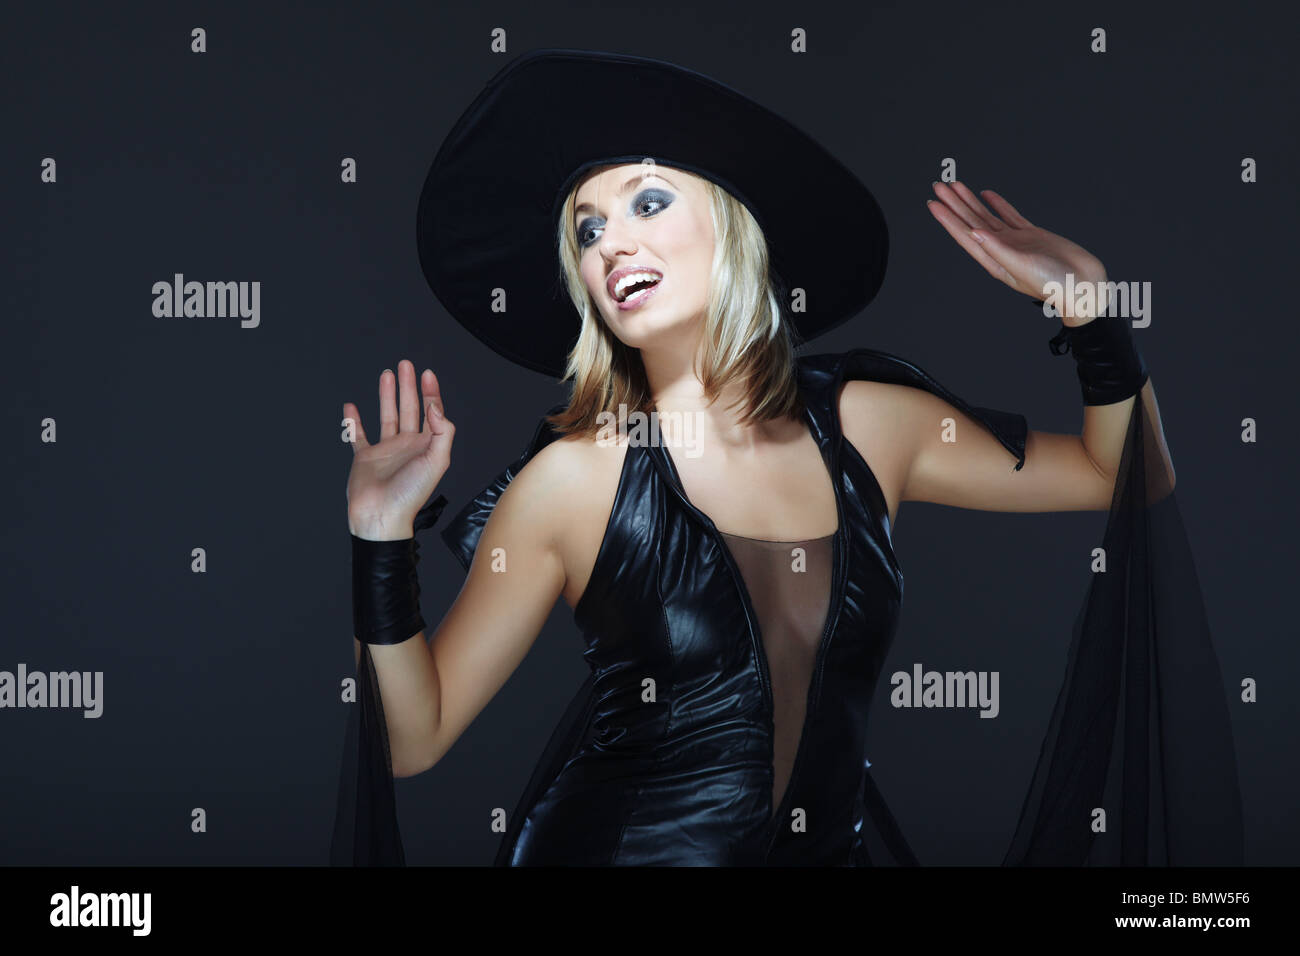 Smiling lady in the Halloween witch costume on a dark background - Stock Image